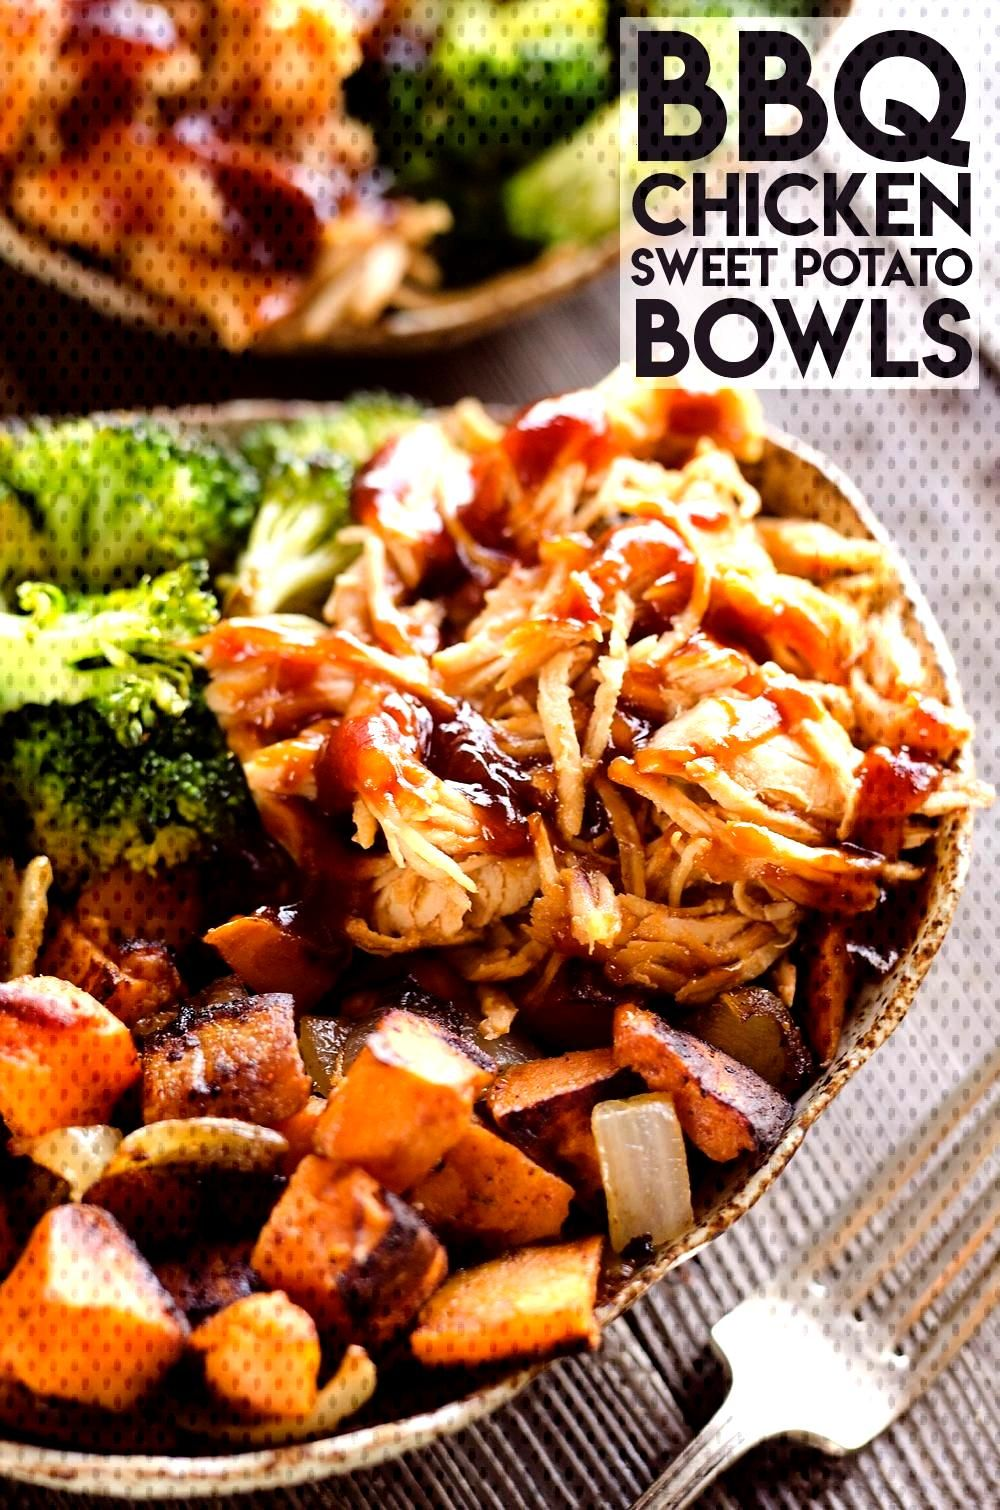 BBQ Chicken amp Roasted Sweet Potato Bowls BBQ Chicken amp Roasted Sweet Potato Bowls are a hearty and